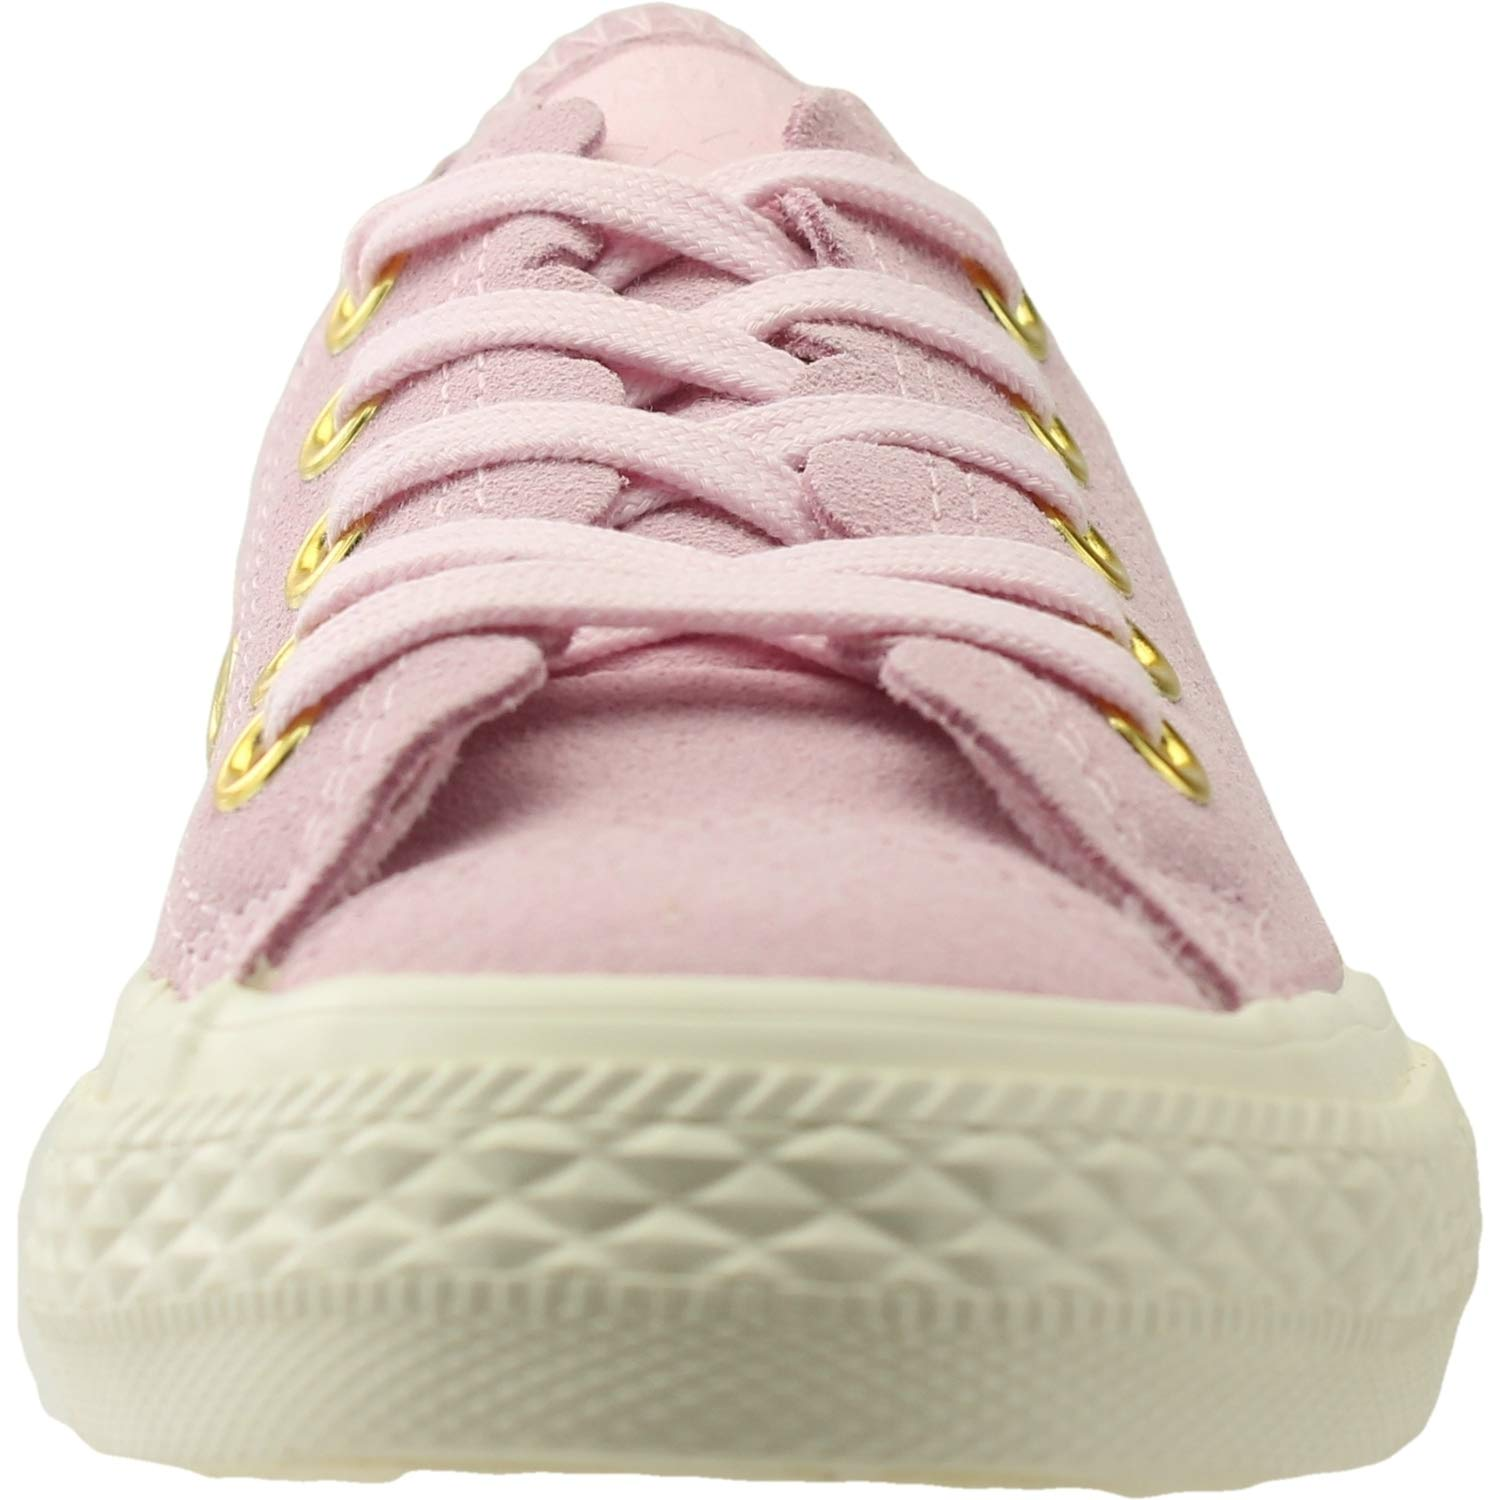 Converse Chuck Taylor All Star Ox Frilly Thrills Thrills Thrills Rosa Schaum Wildleder Junior Trainer Schuhe 58e20b